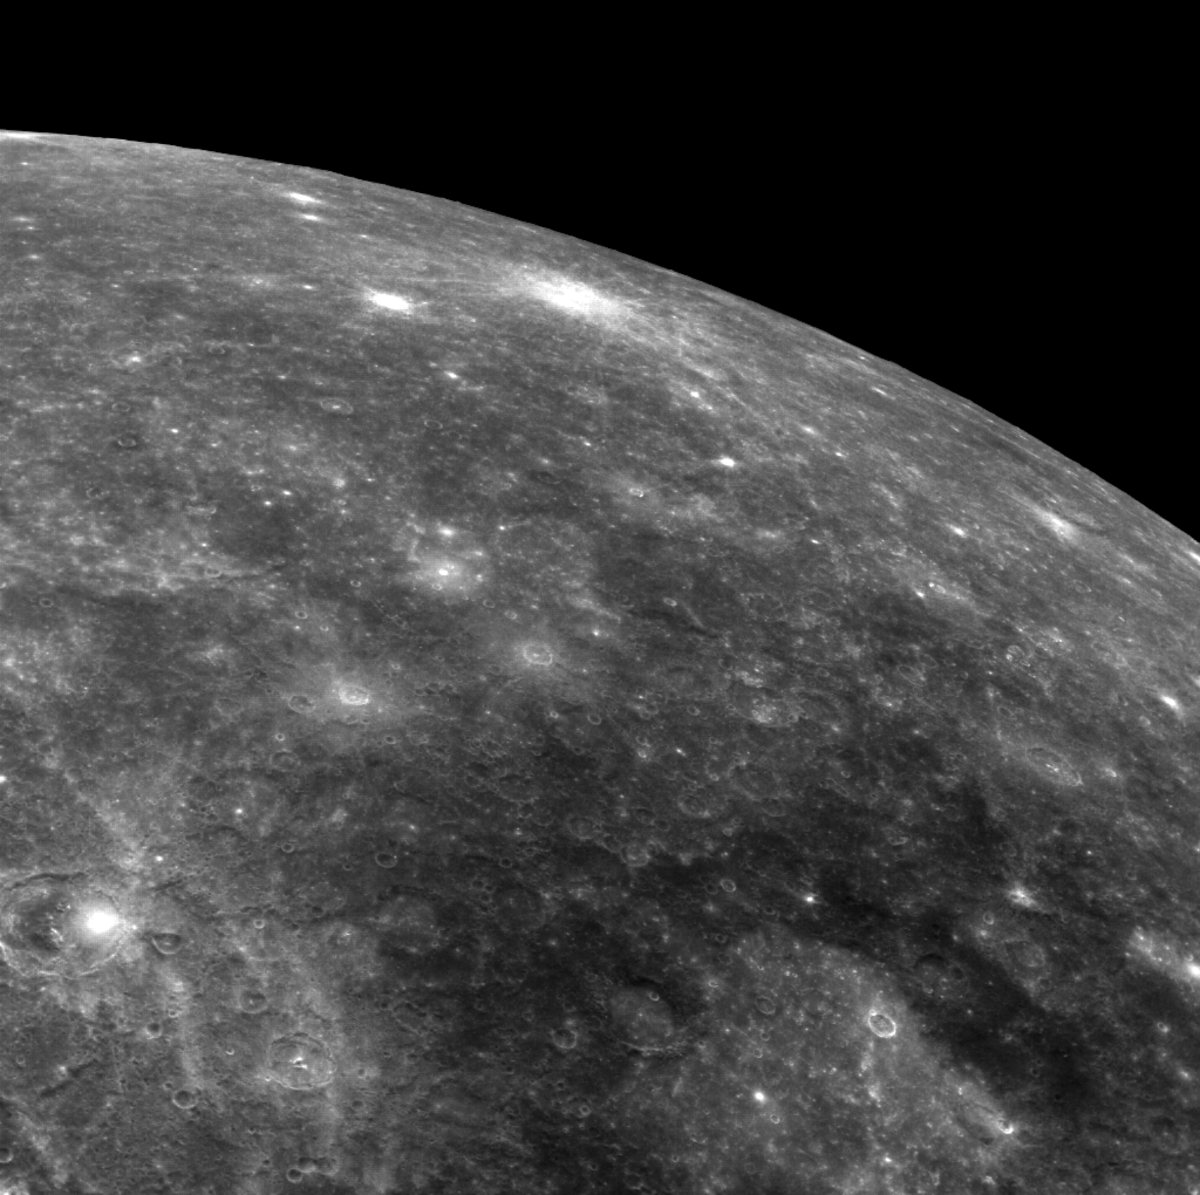 Up-close view of Mercury's surface. Notice how the planet is dotted with meteor and asteroid craters.